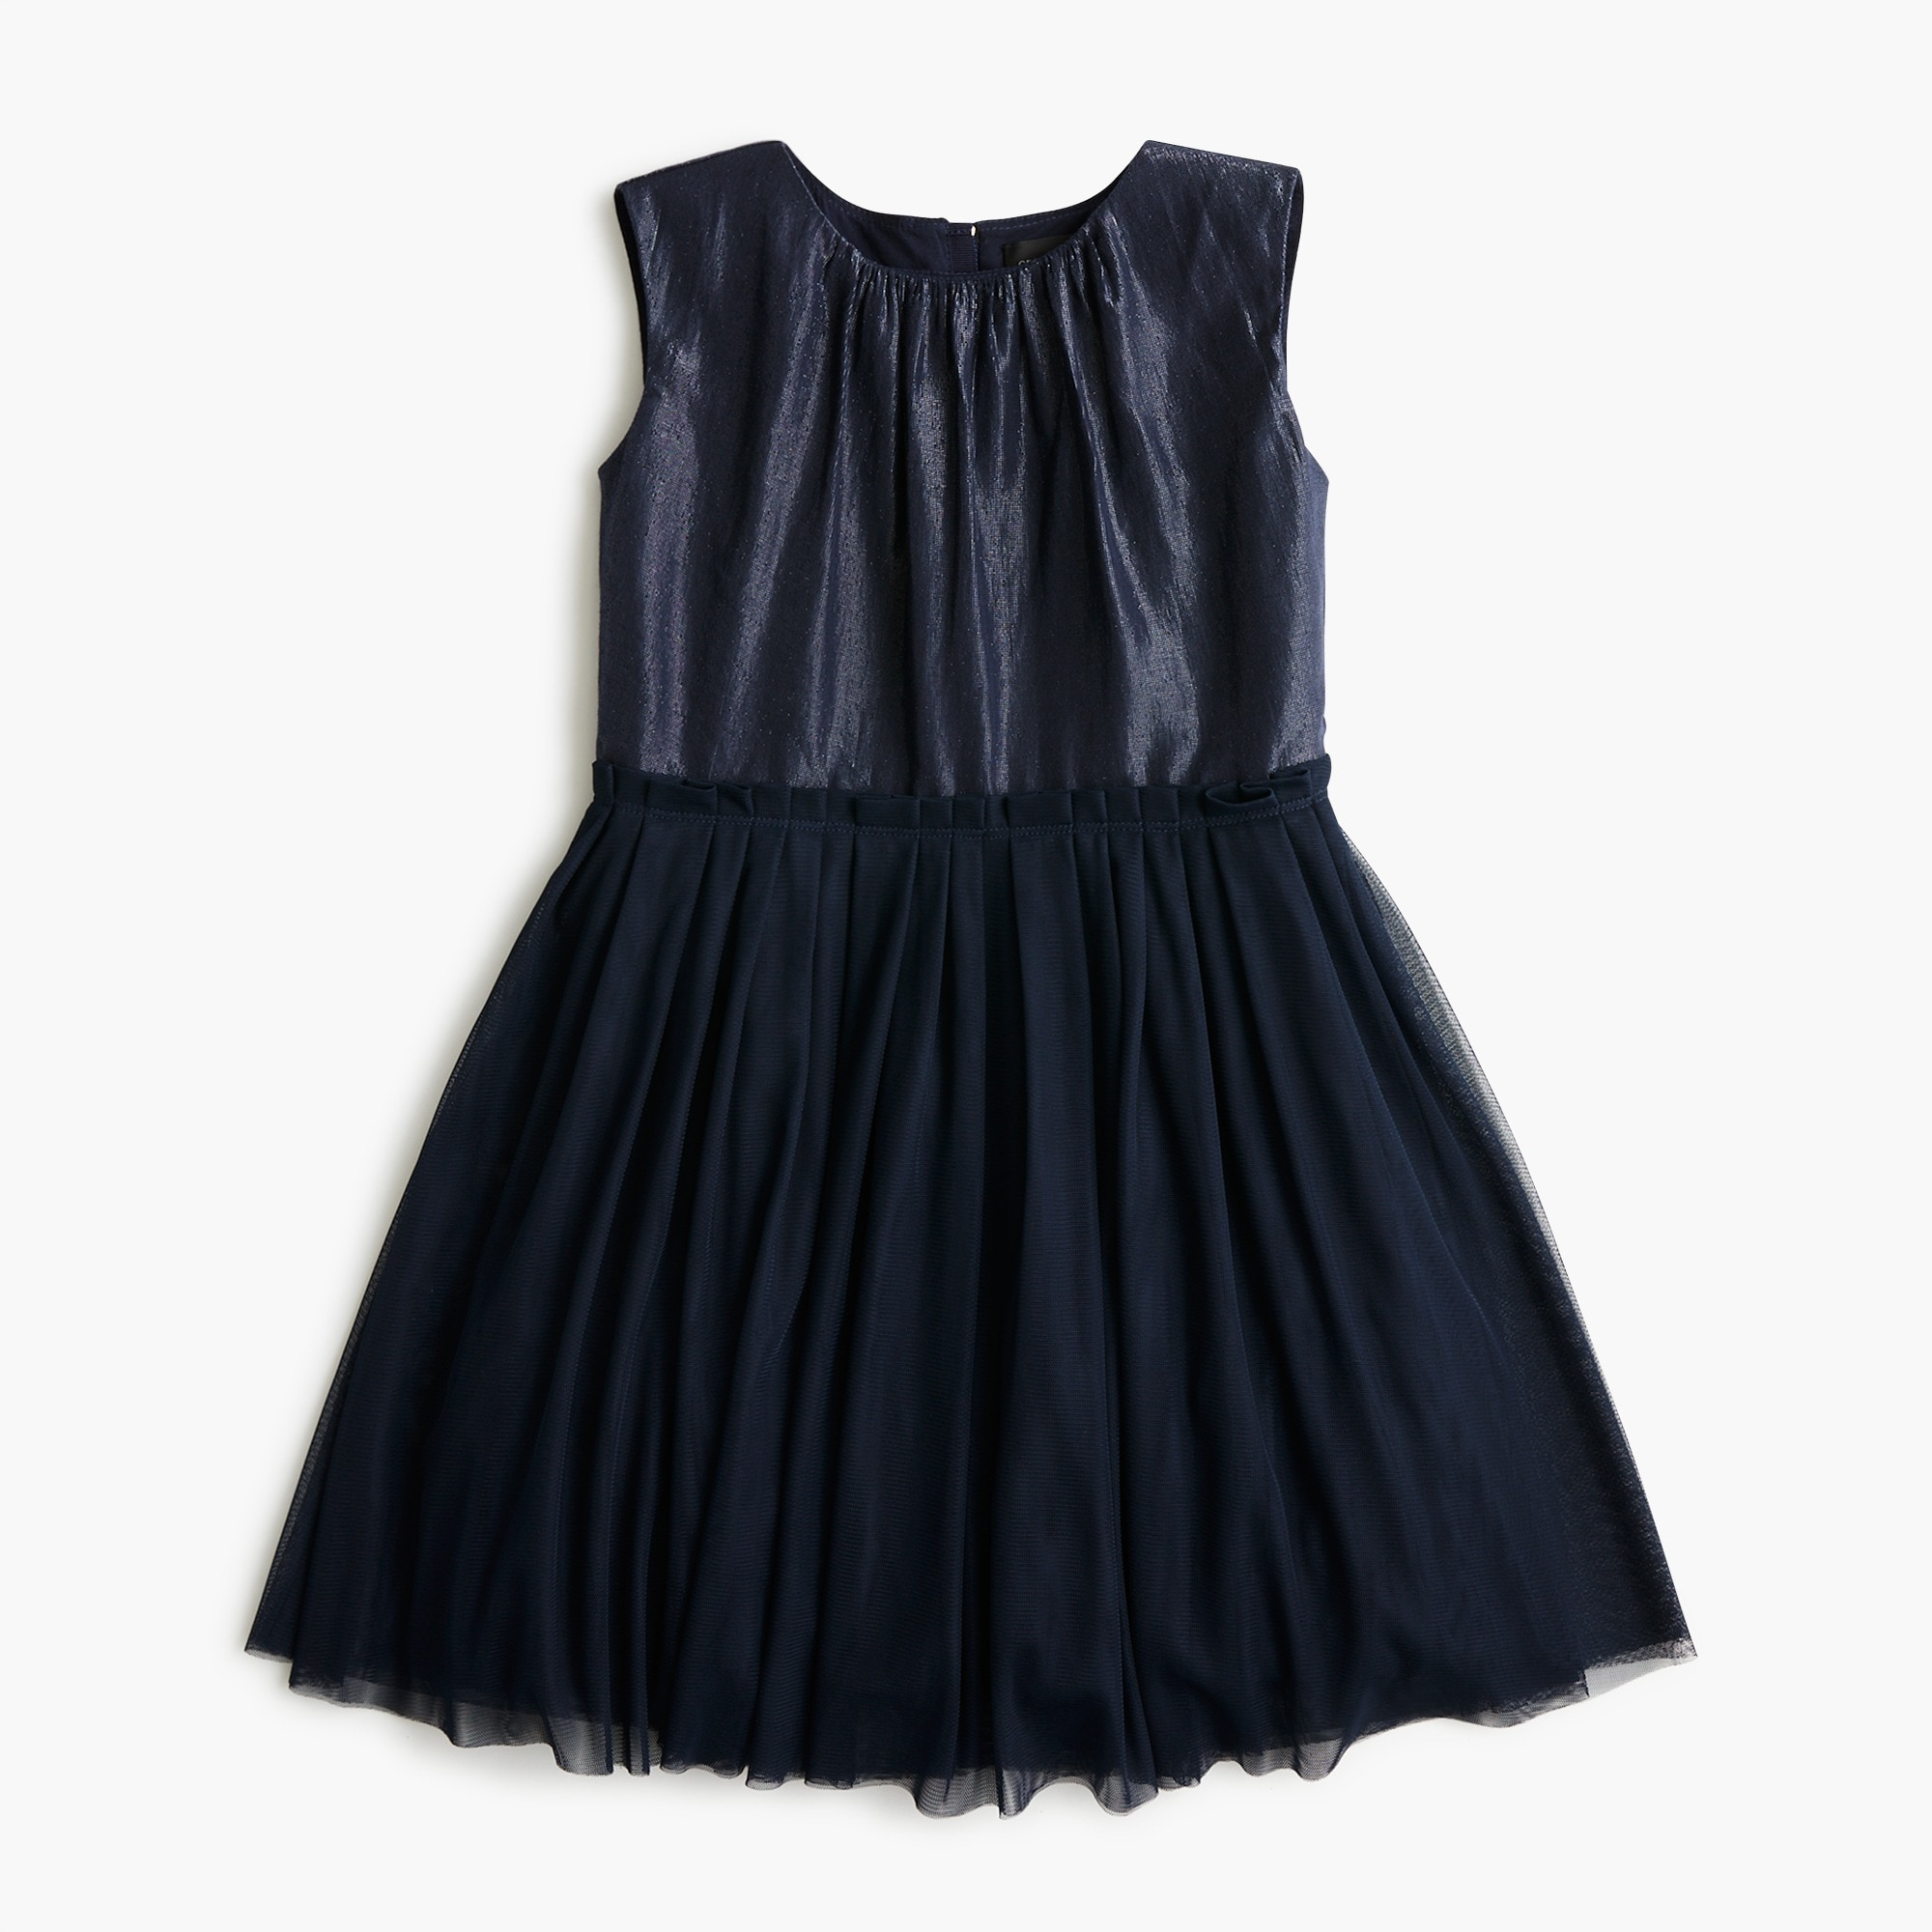 girls Girls' tulle-skirted dress